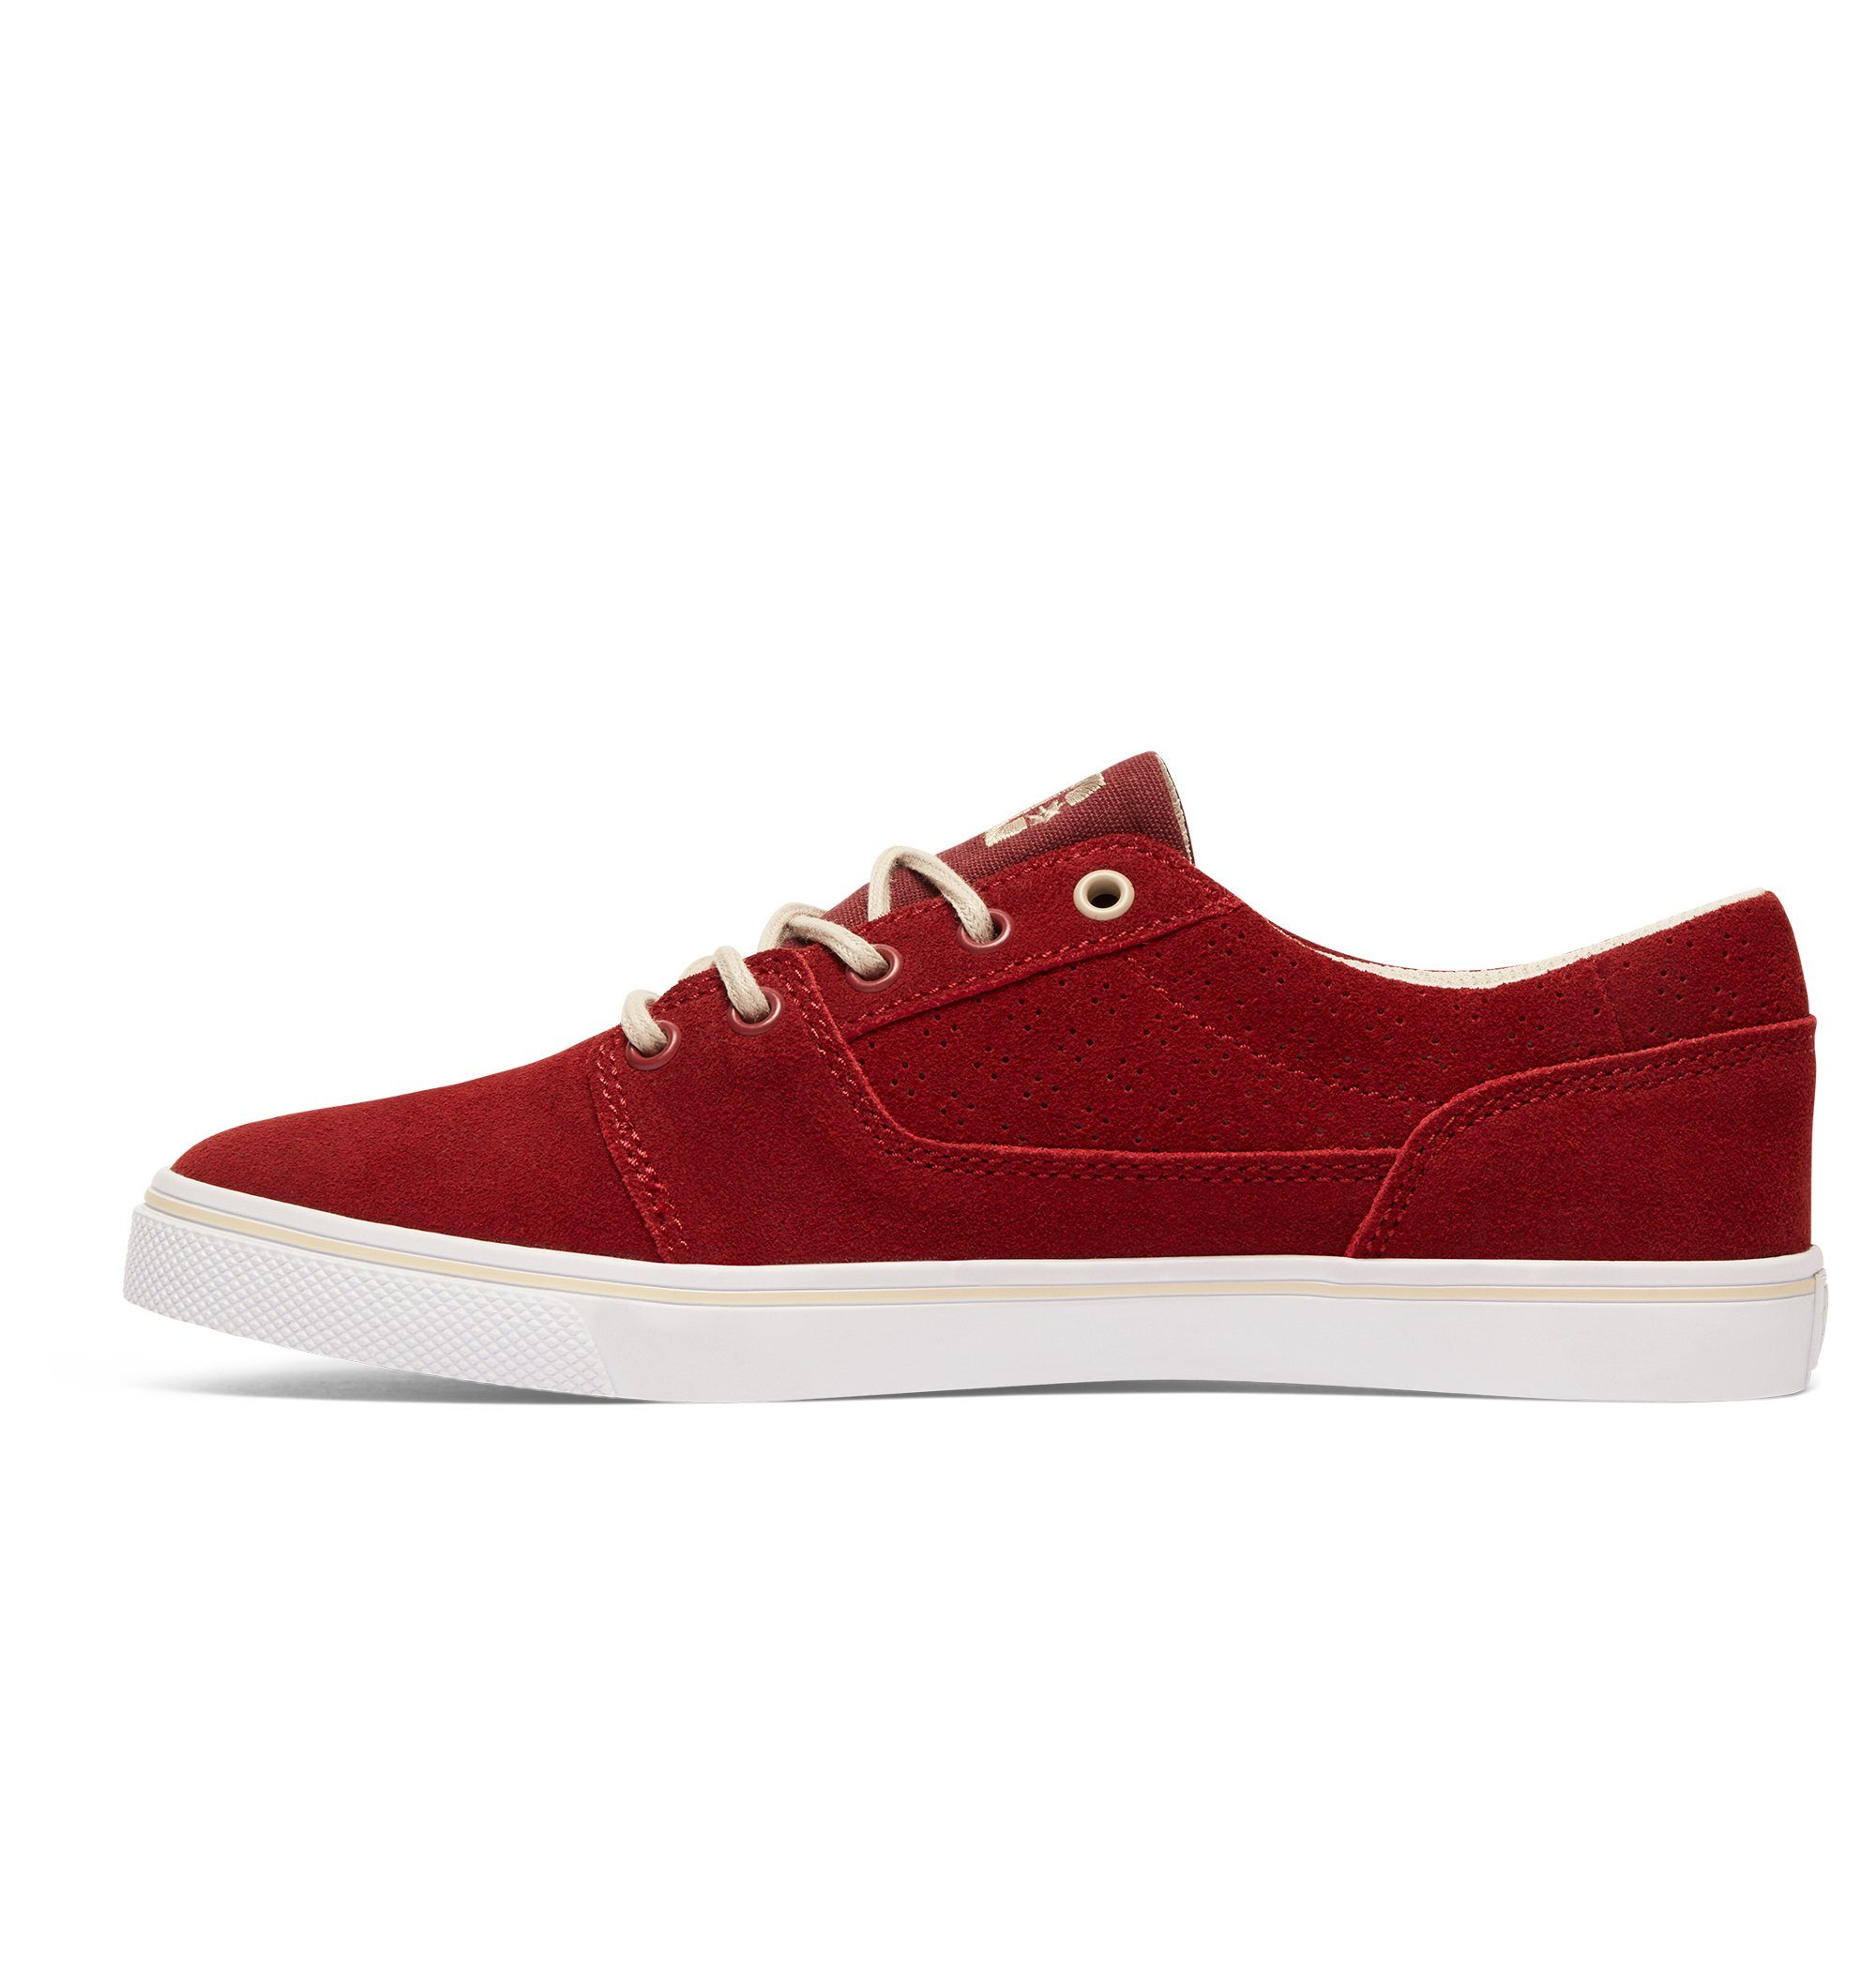 Chaussures Rouges Dc Chaussures Tonik GlObHK9B